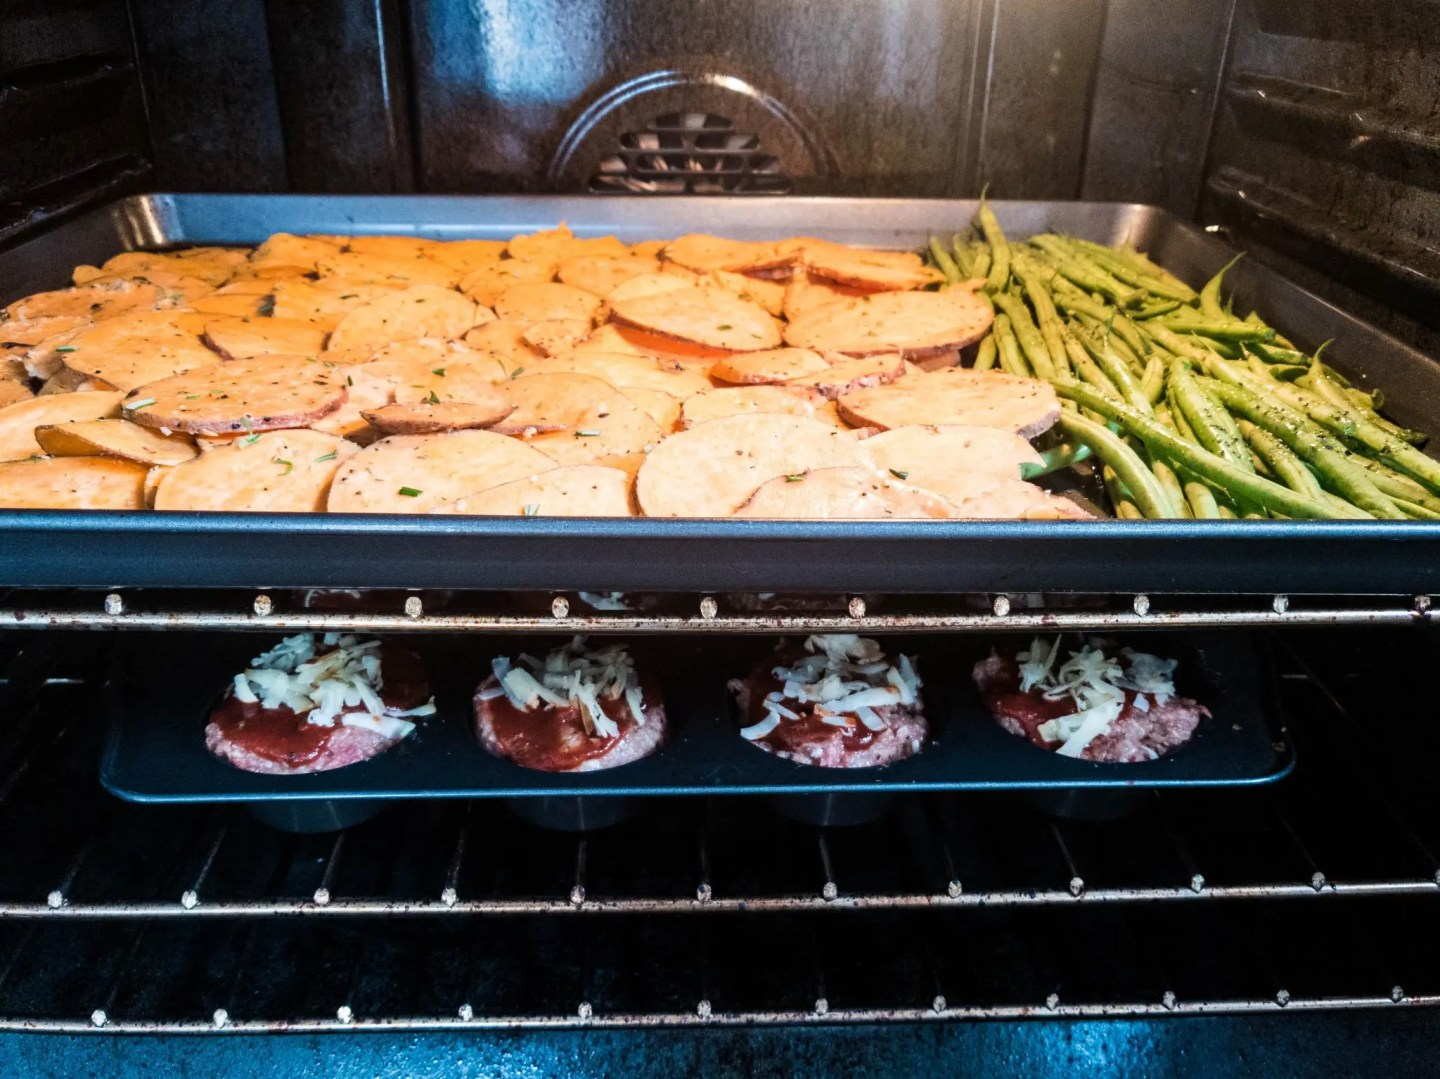 mini meatloaf and veggies meal prep in oven